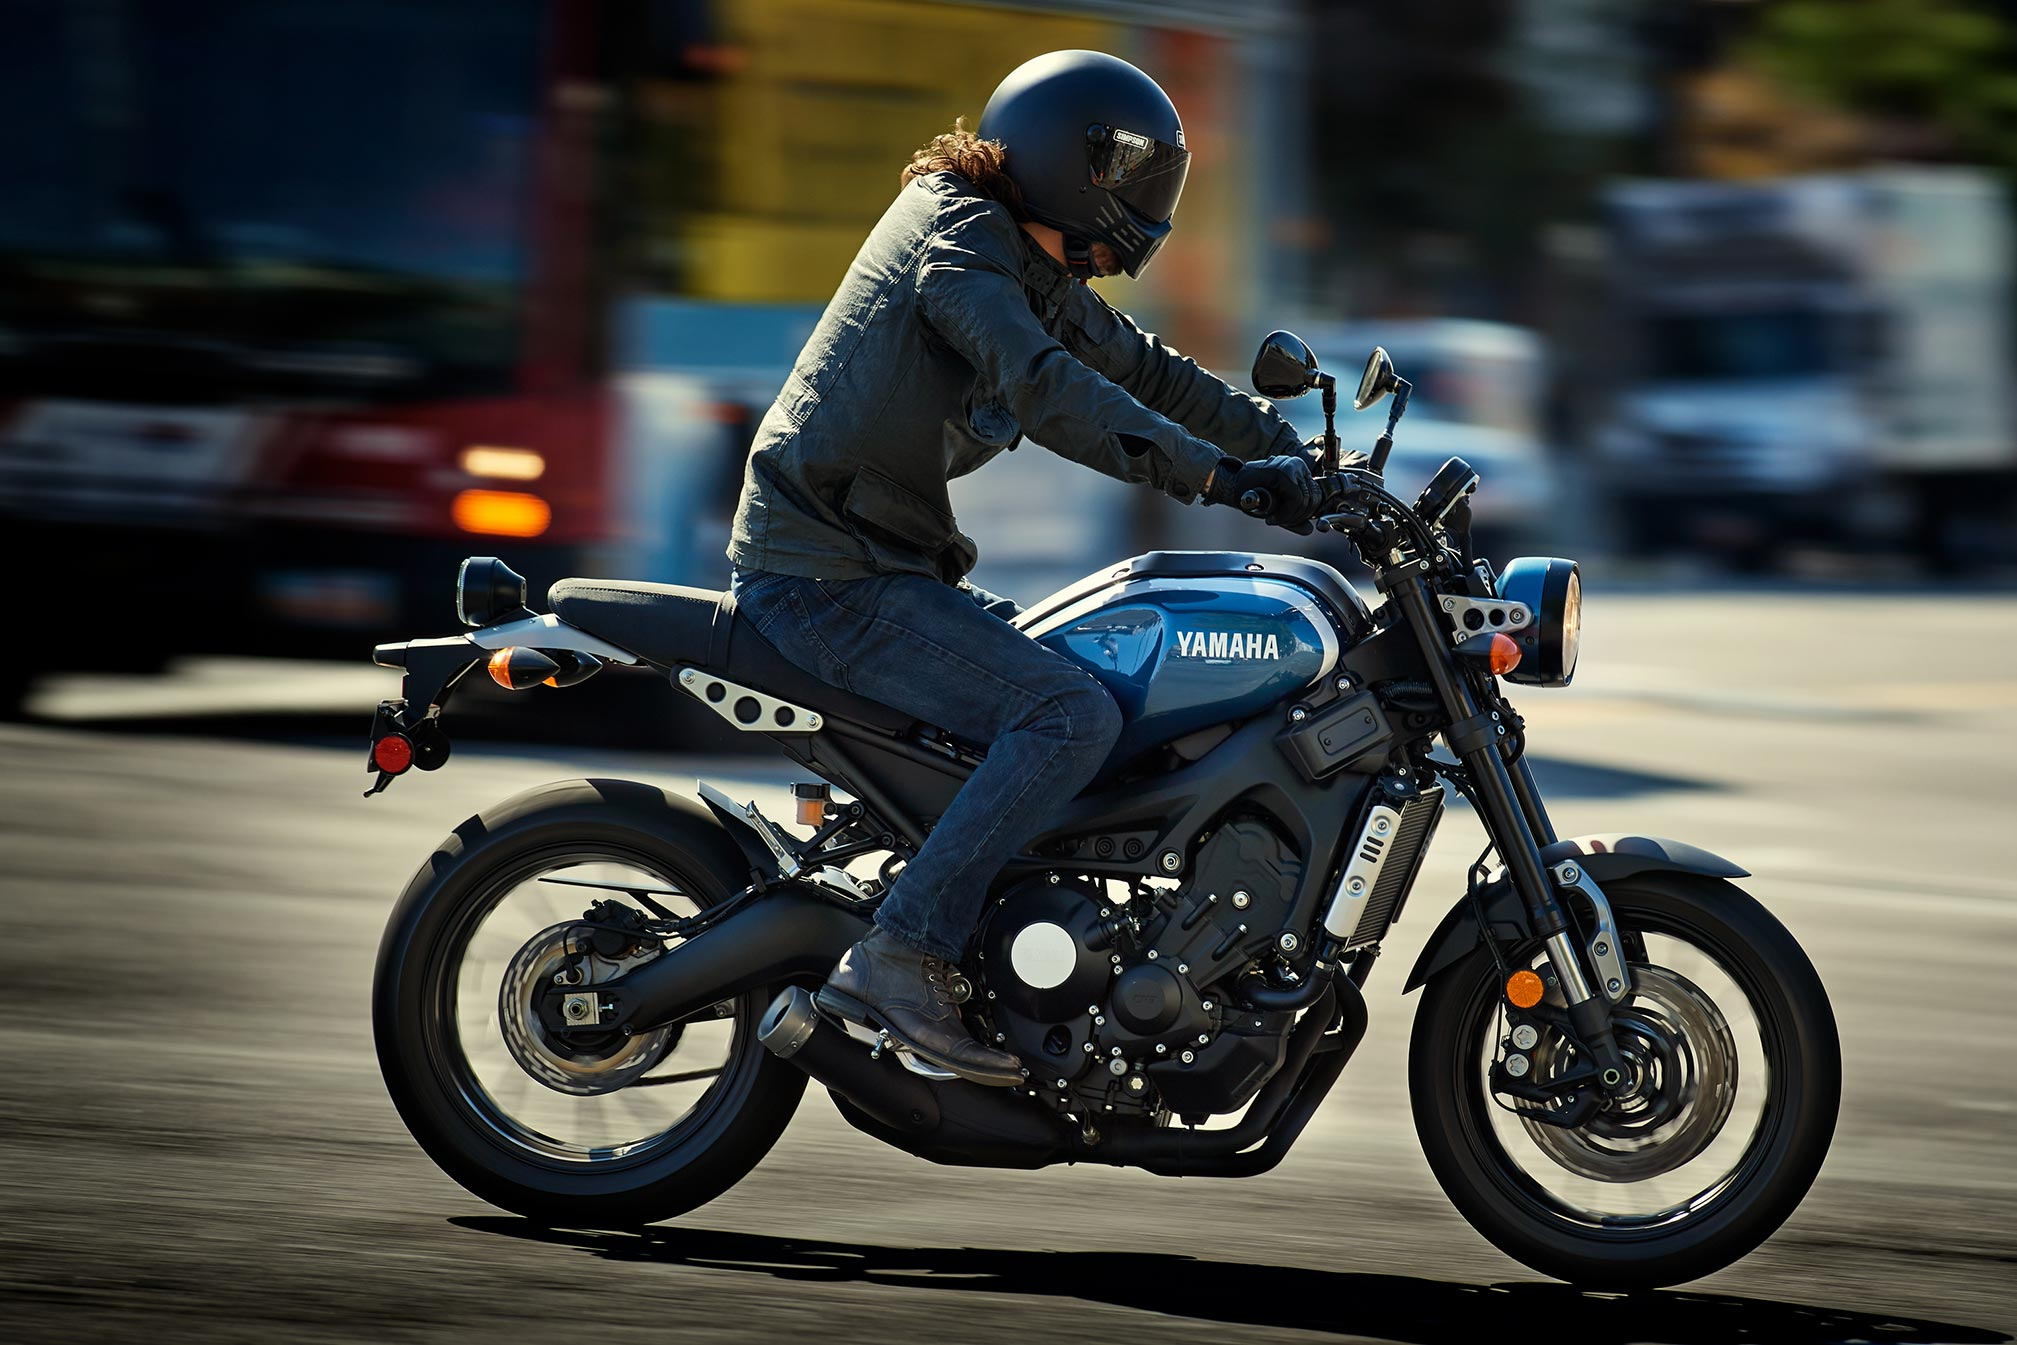 2017 Yamaha XSR900 Review